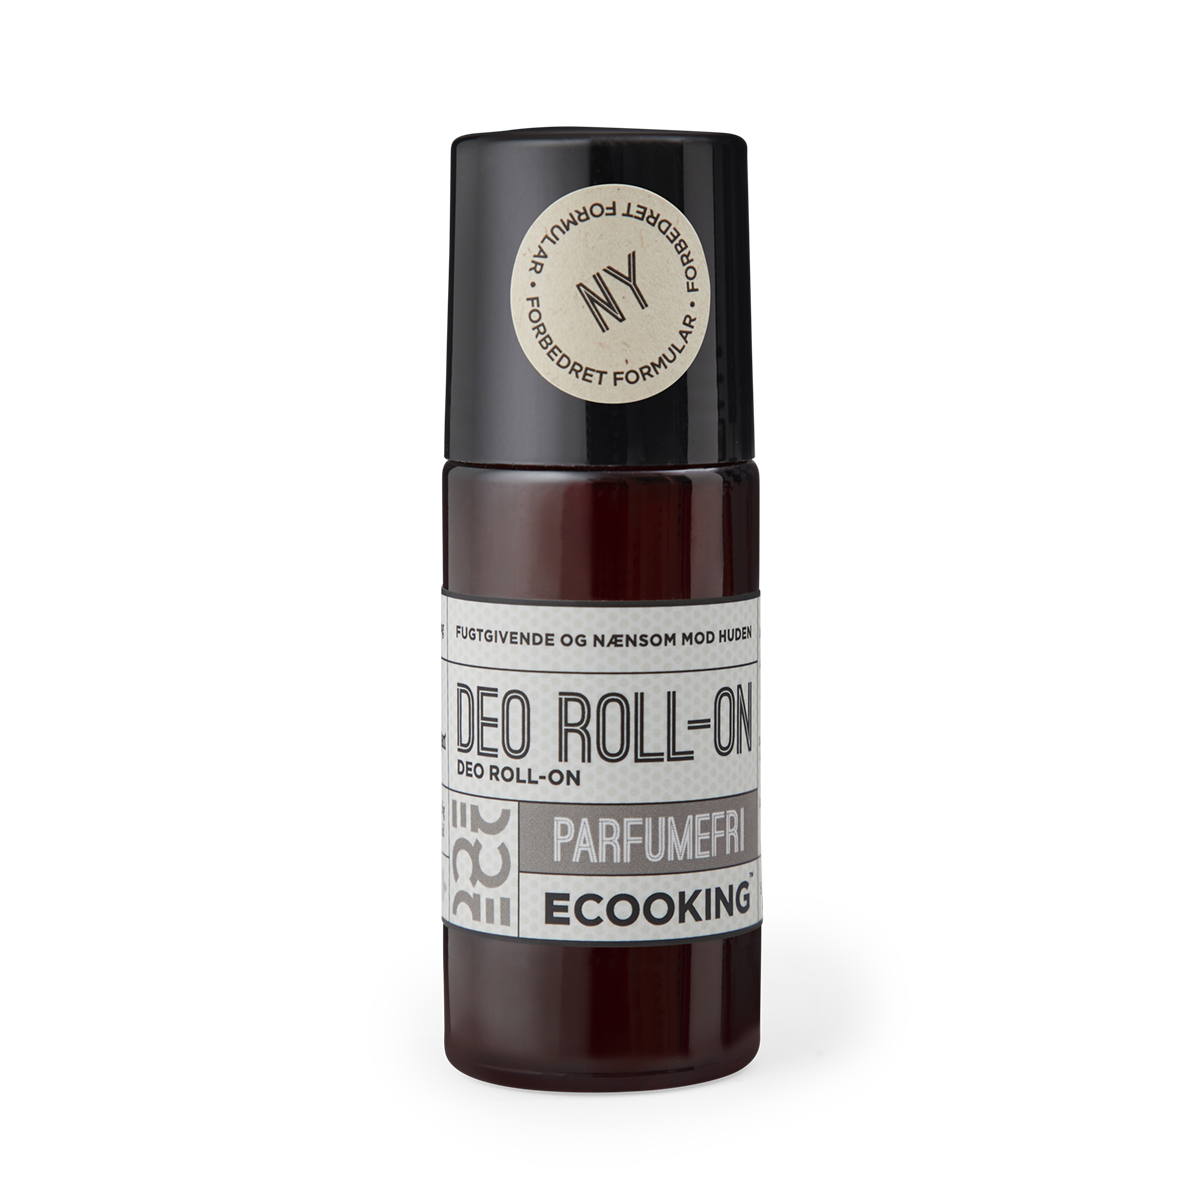 Ecooking DEO ROLL-ON PARFUMEFRI 50 ML